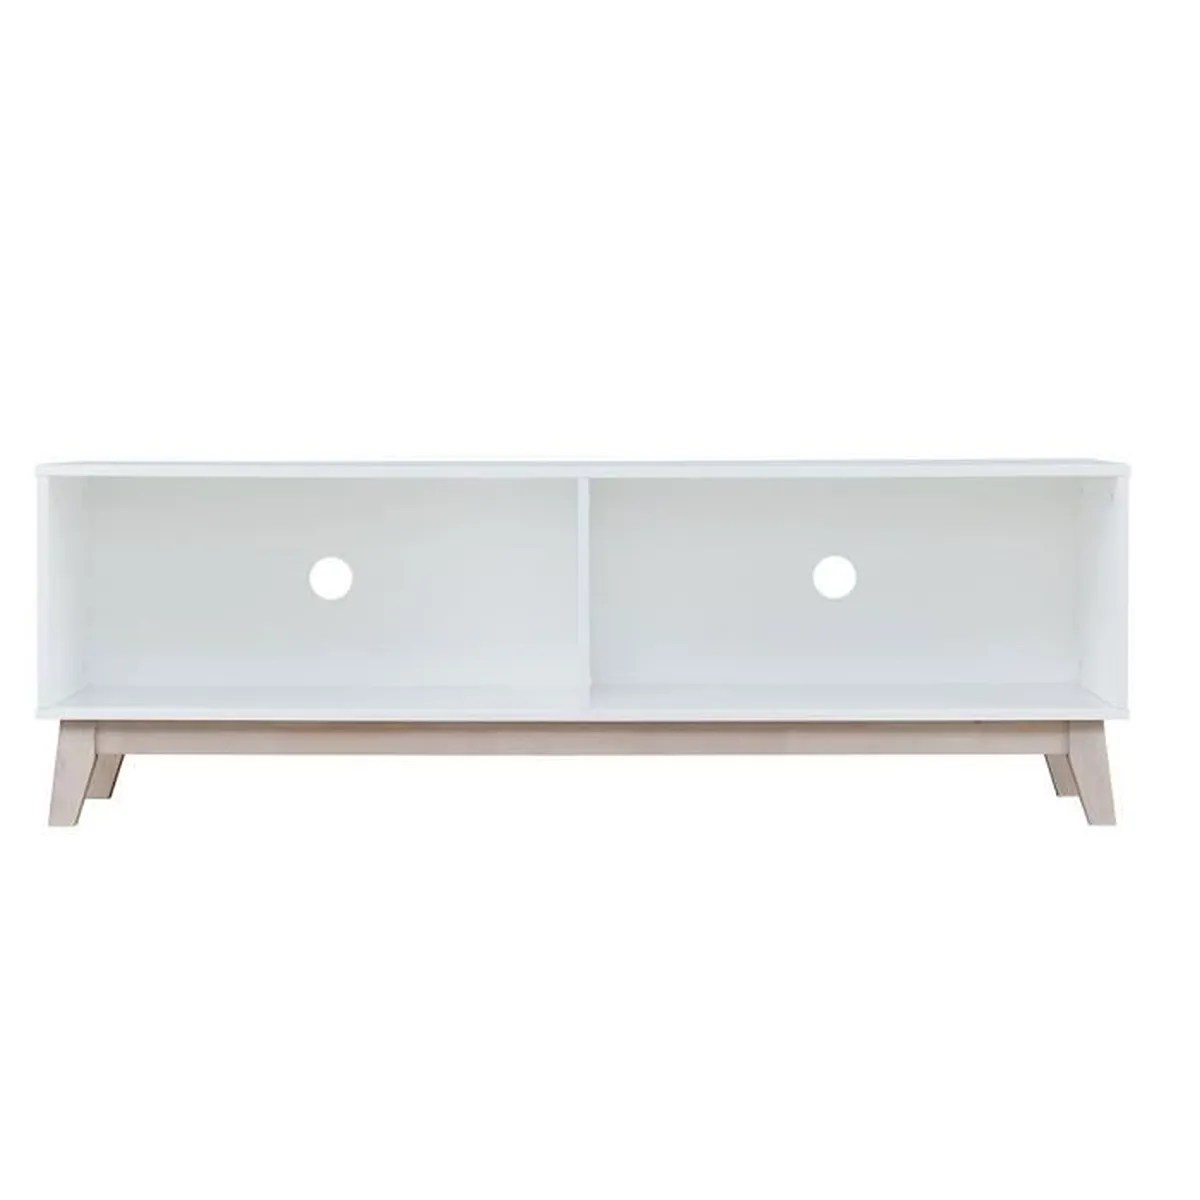 Miliboo Meuble Tv Meuble Tv Design Scandinave Helia